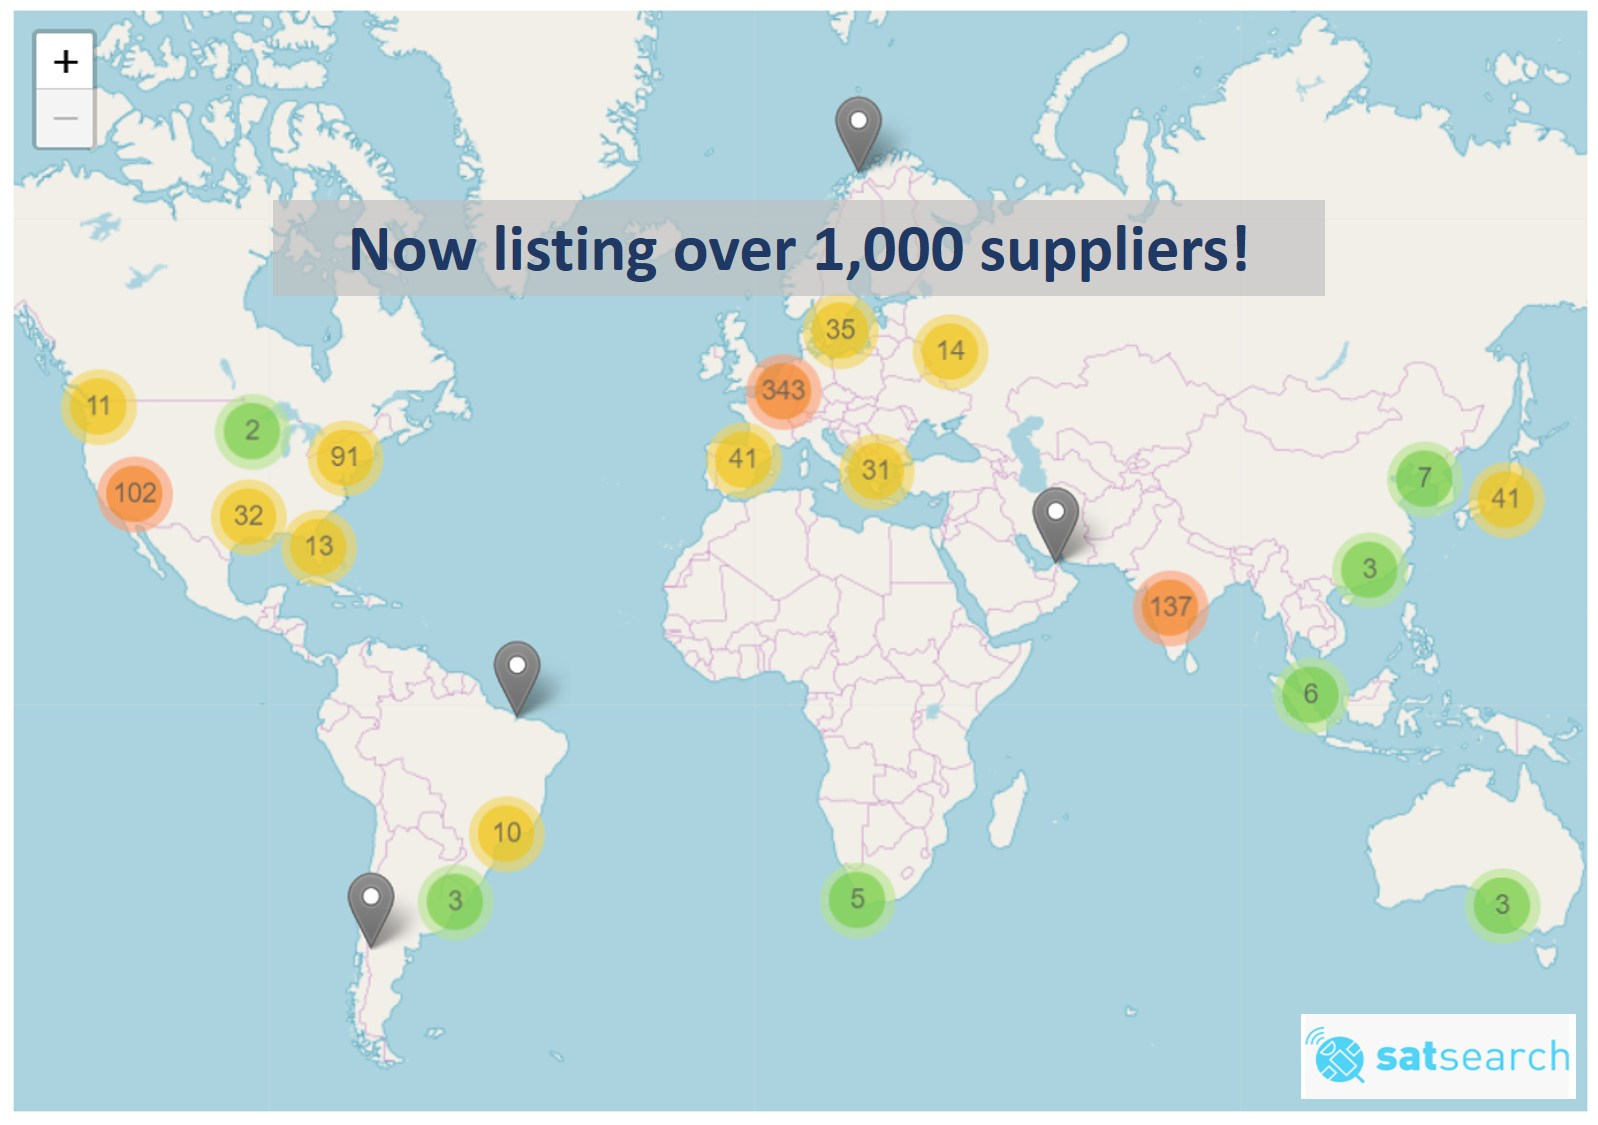 The satsearch supplier map